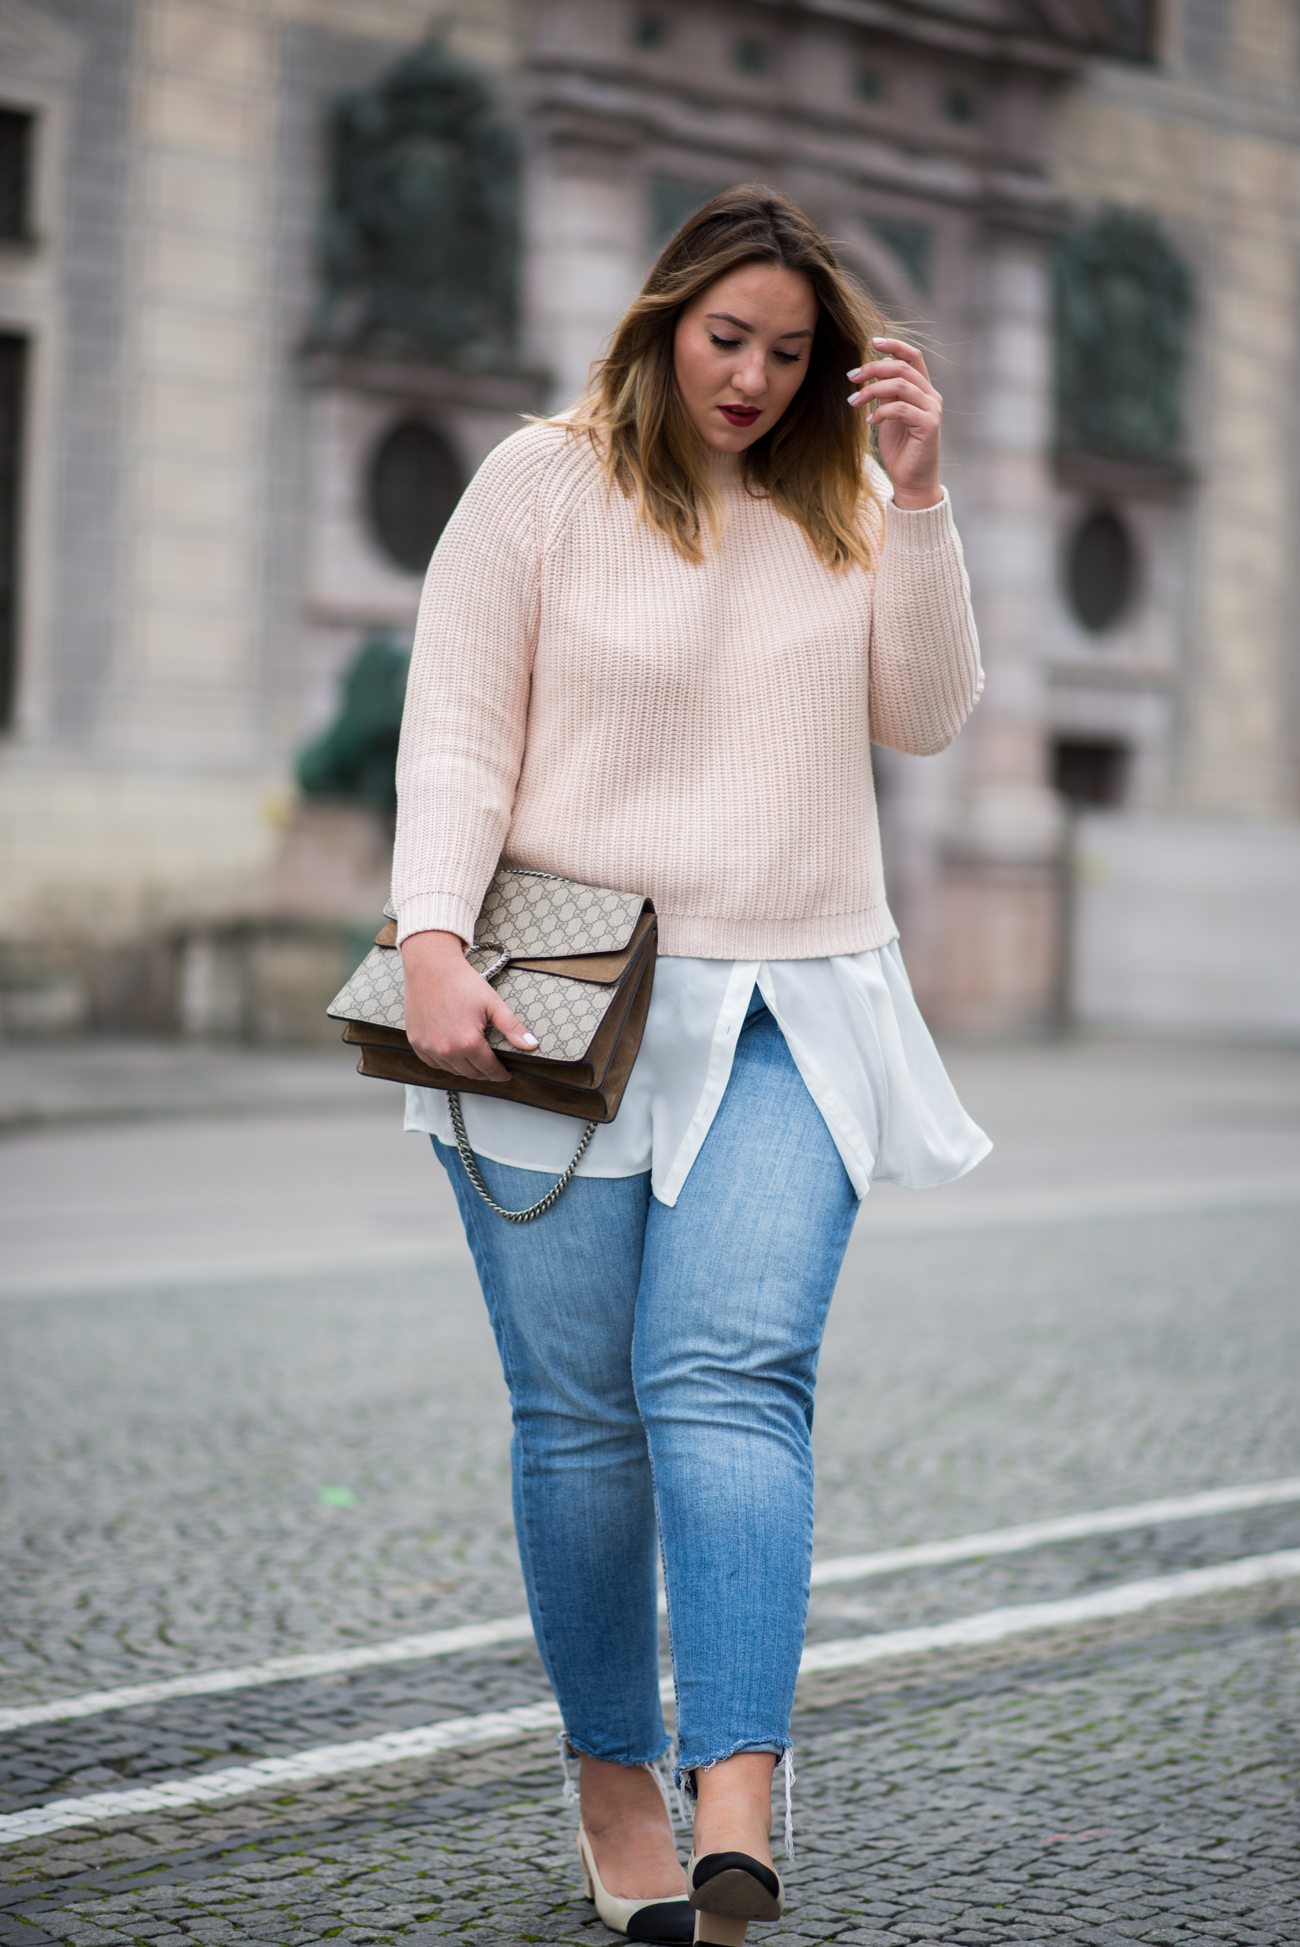 the-skinny-and-the-curvy-one_fashion_plussize_marina-rinaldi_chanel_jeans_blue-jeans_curve-outfit-inspo_muenchen-blogger_daily-outfit_plus-size-blog_plus-size-blogger-deutschland_-7-von-23